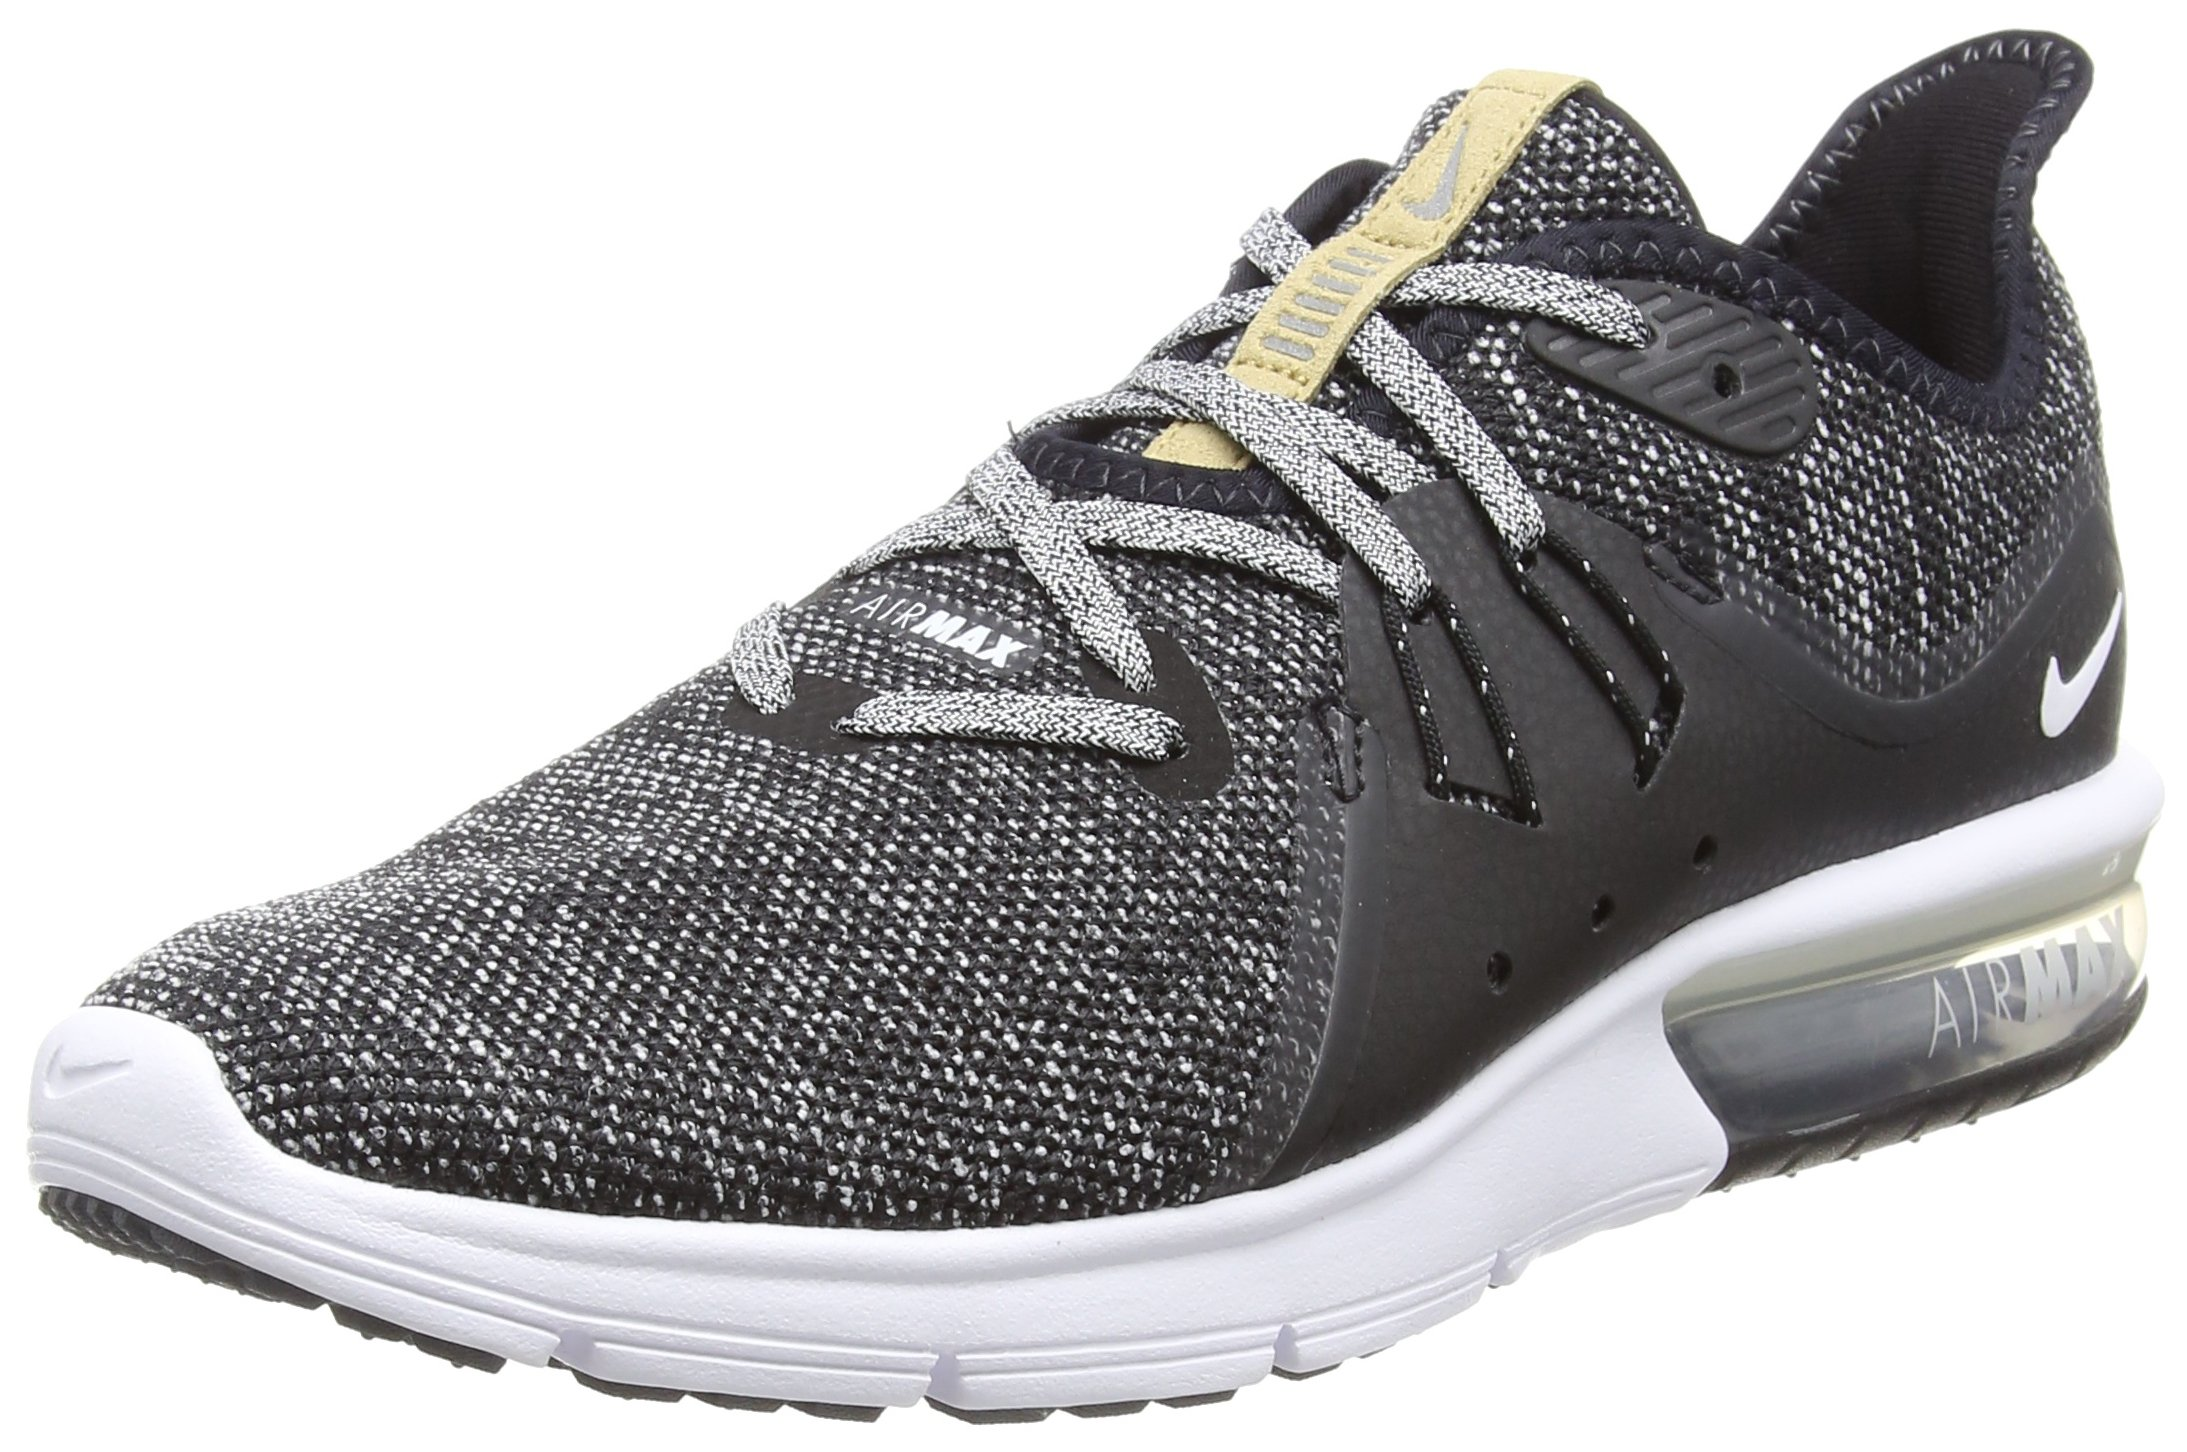 f83a78559bf Galleon - Nike Men's Air Max Sequent 3 Running Shoes Black/White-Dark Grey  10.5